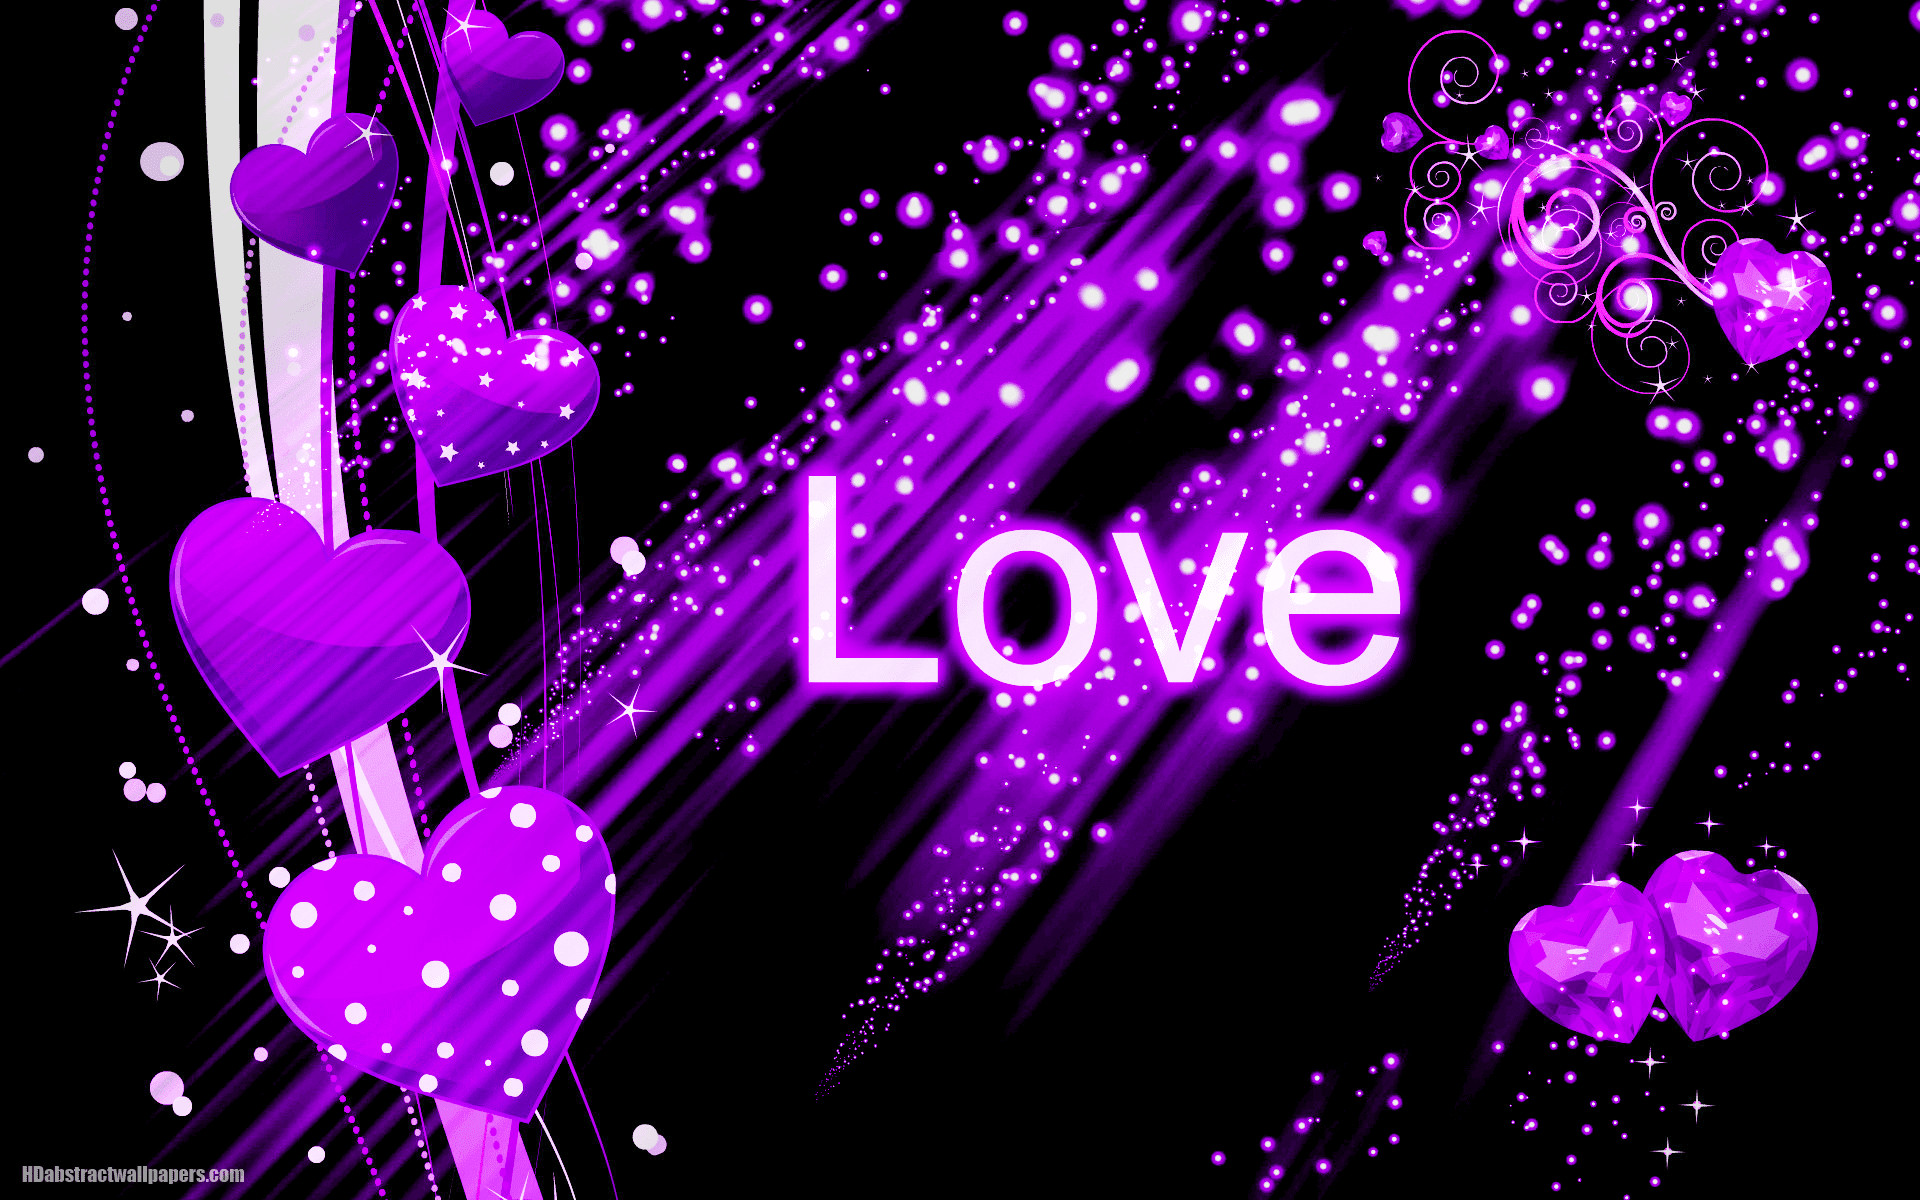 1920x1200 Beautiful black abstract wallpaper with purple love hearts and the text  love. Send this background to your boy or girlfriend, just to say that you  are ...